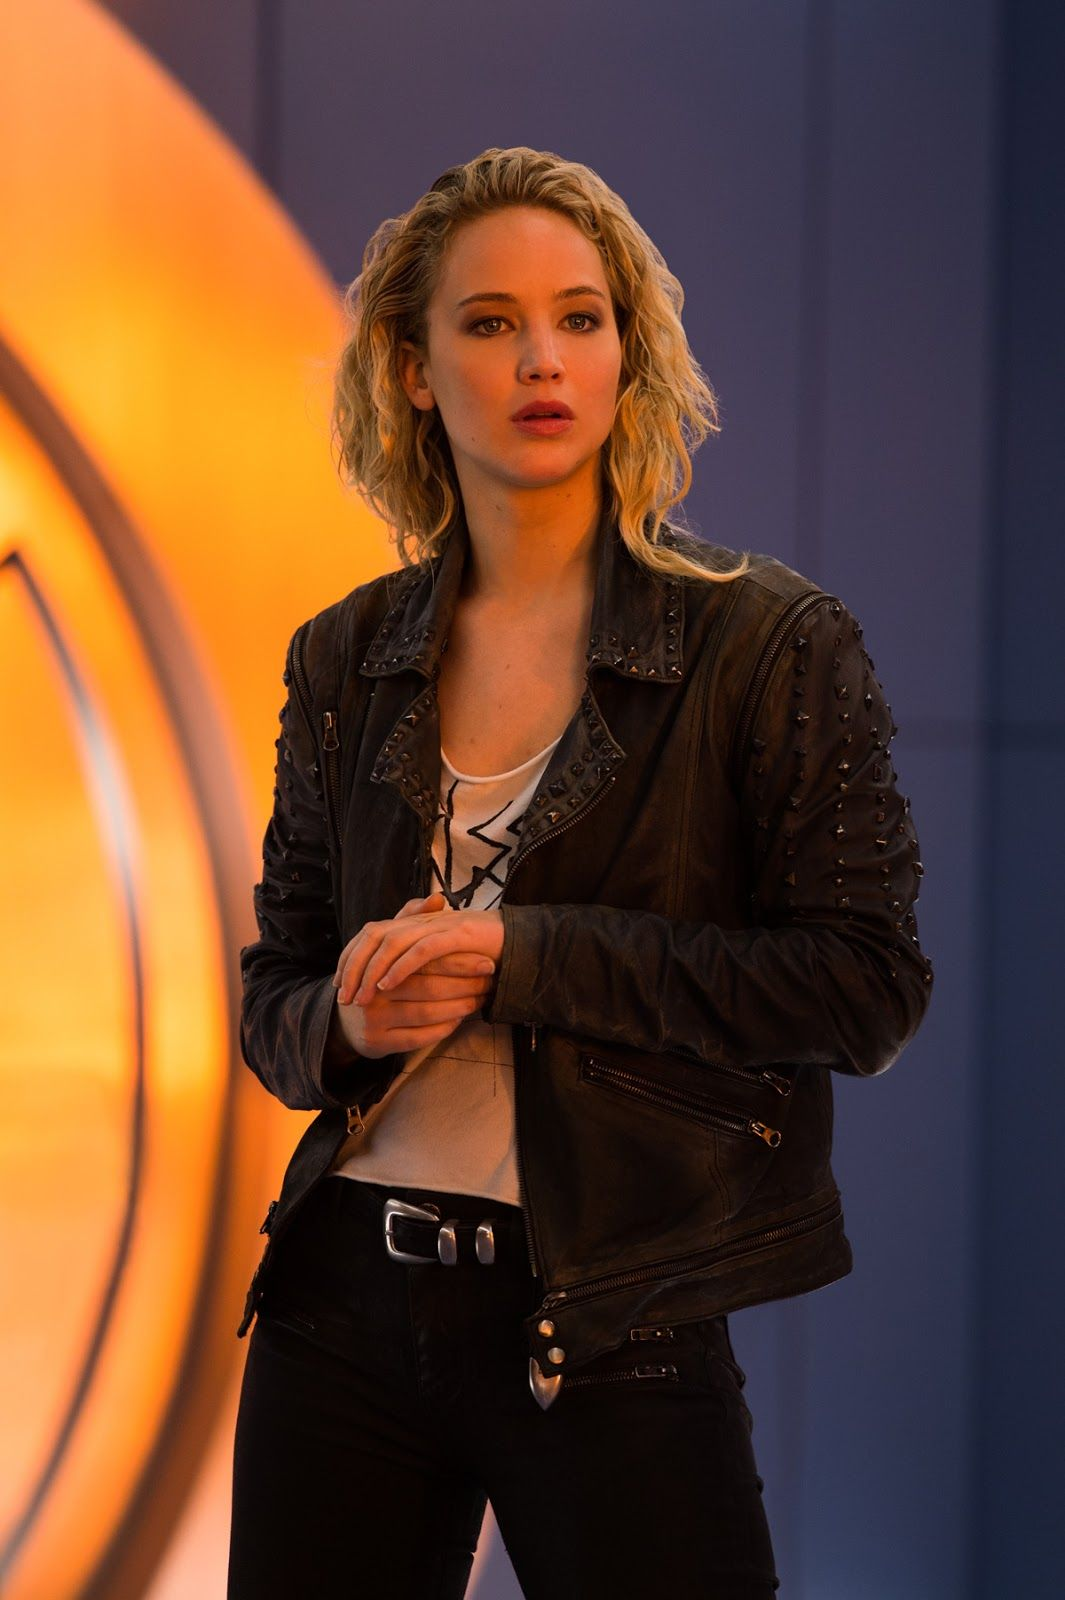 Jennifer Lawrence In Xmen Apocalypse Jpg 1065 1600 Jennifer Lawrence Movies Jennifer Lawrence X Men Jennifer Lawrence